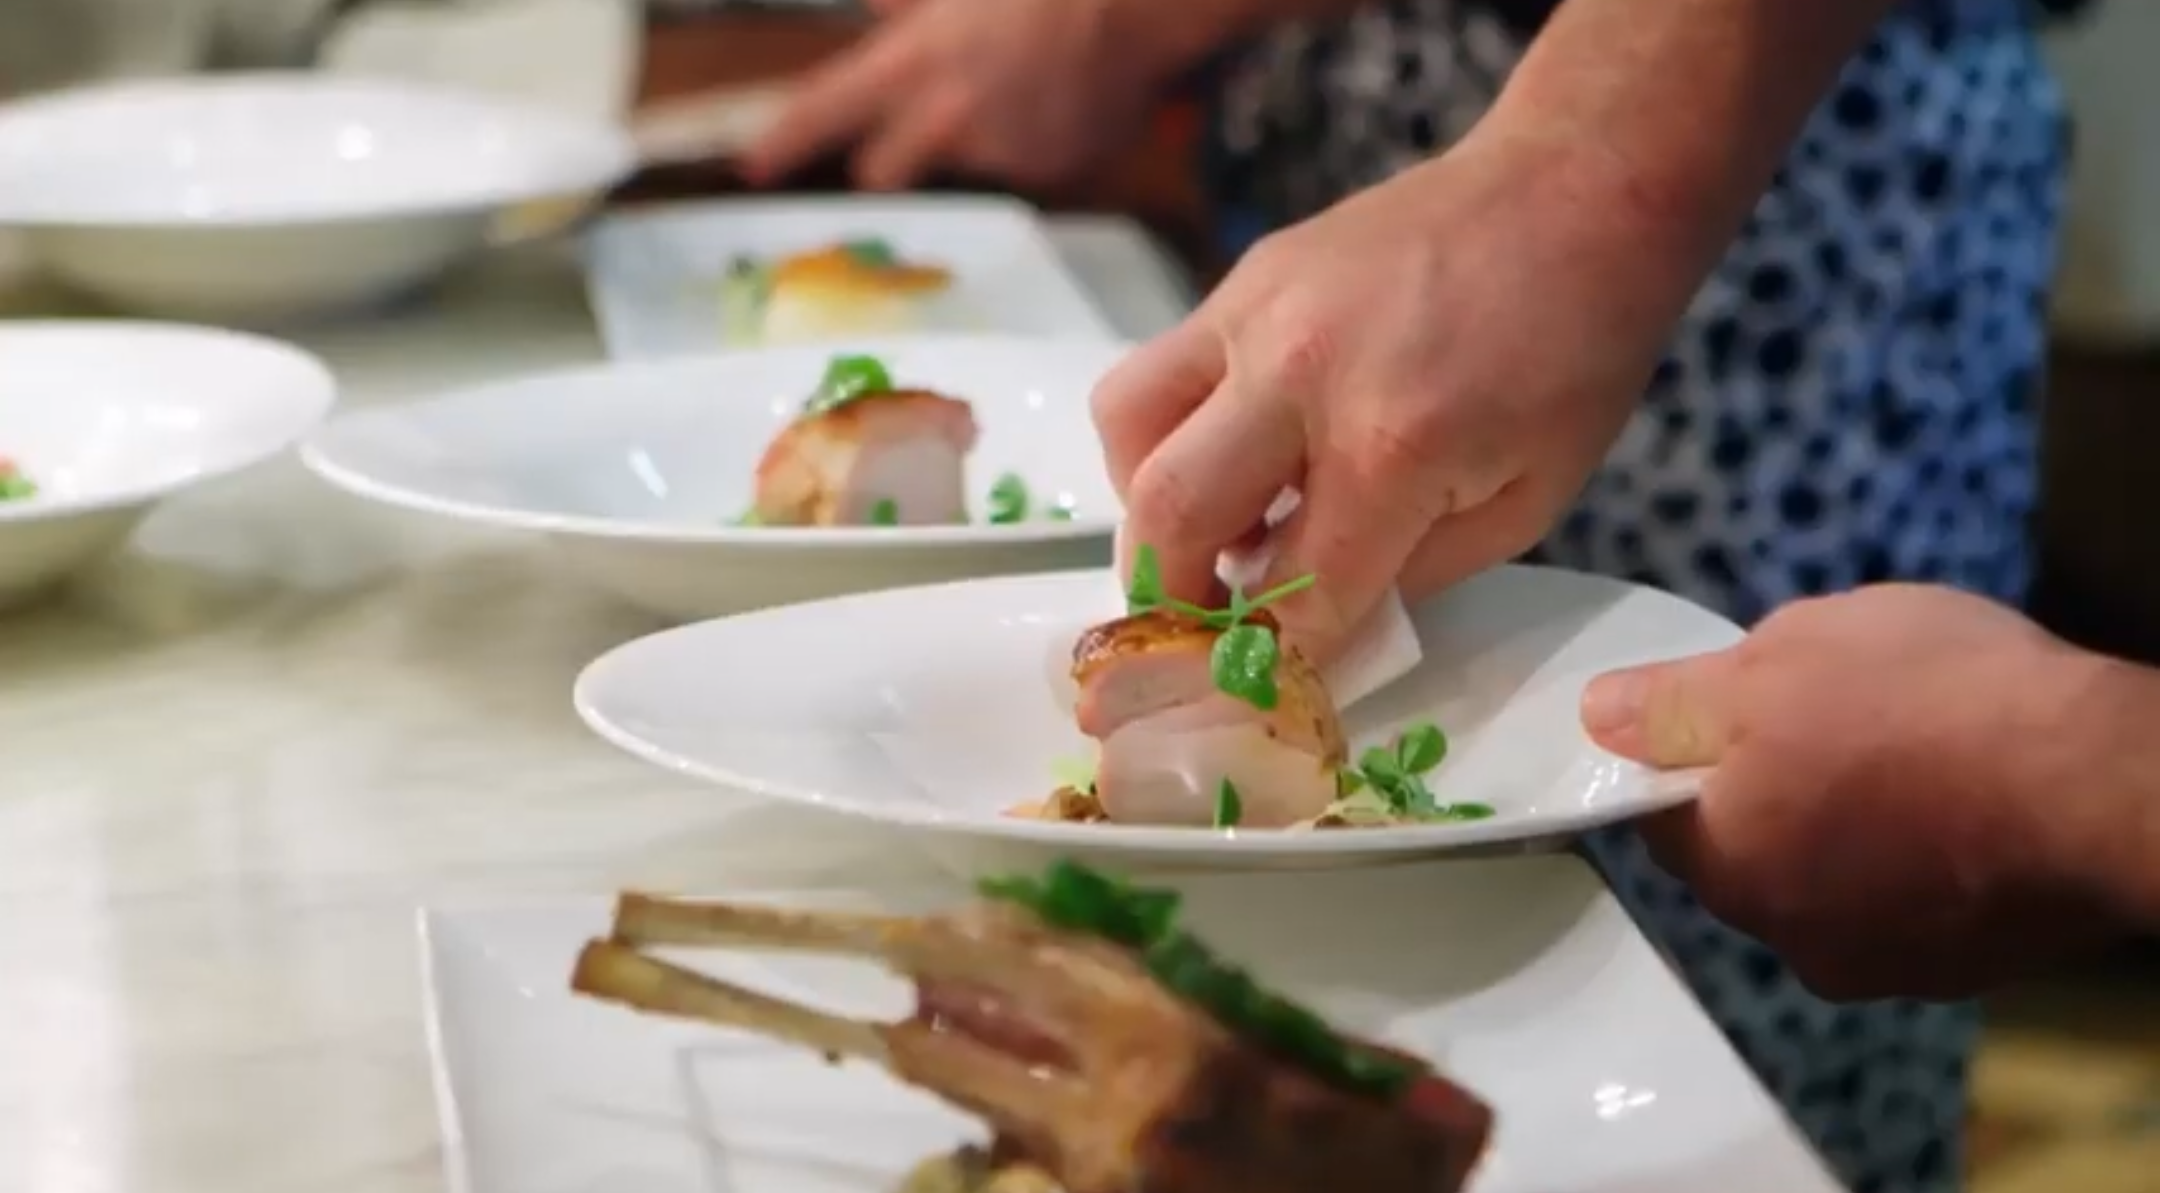 Dishes being prepared at the Inn at Little Washington. (YouTube/Screenshot/PBS FOOD)